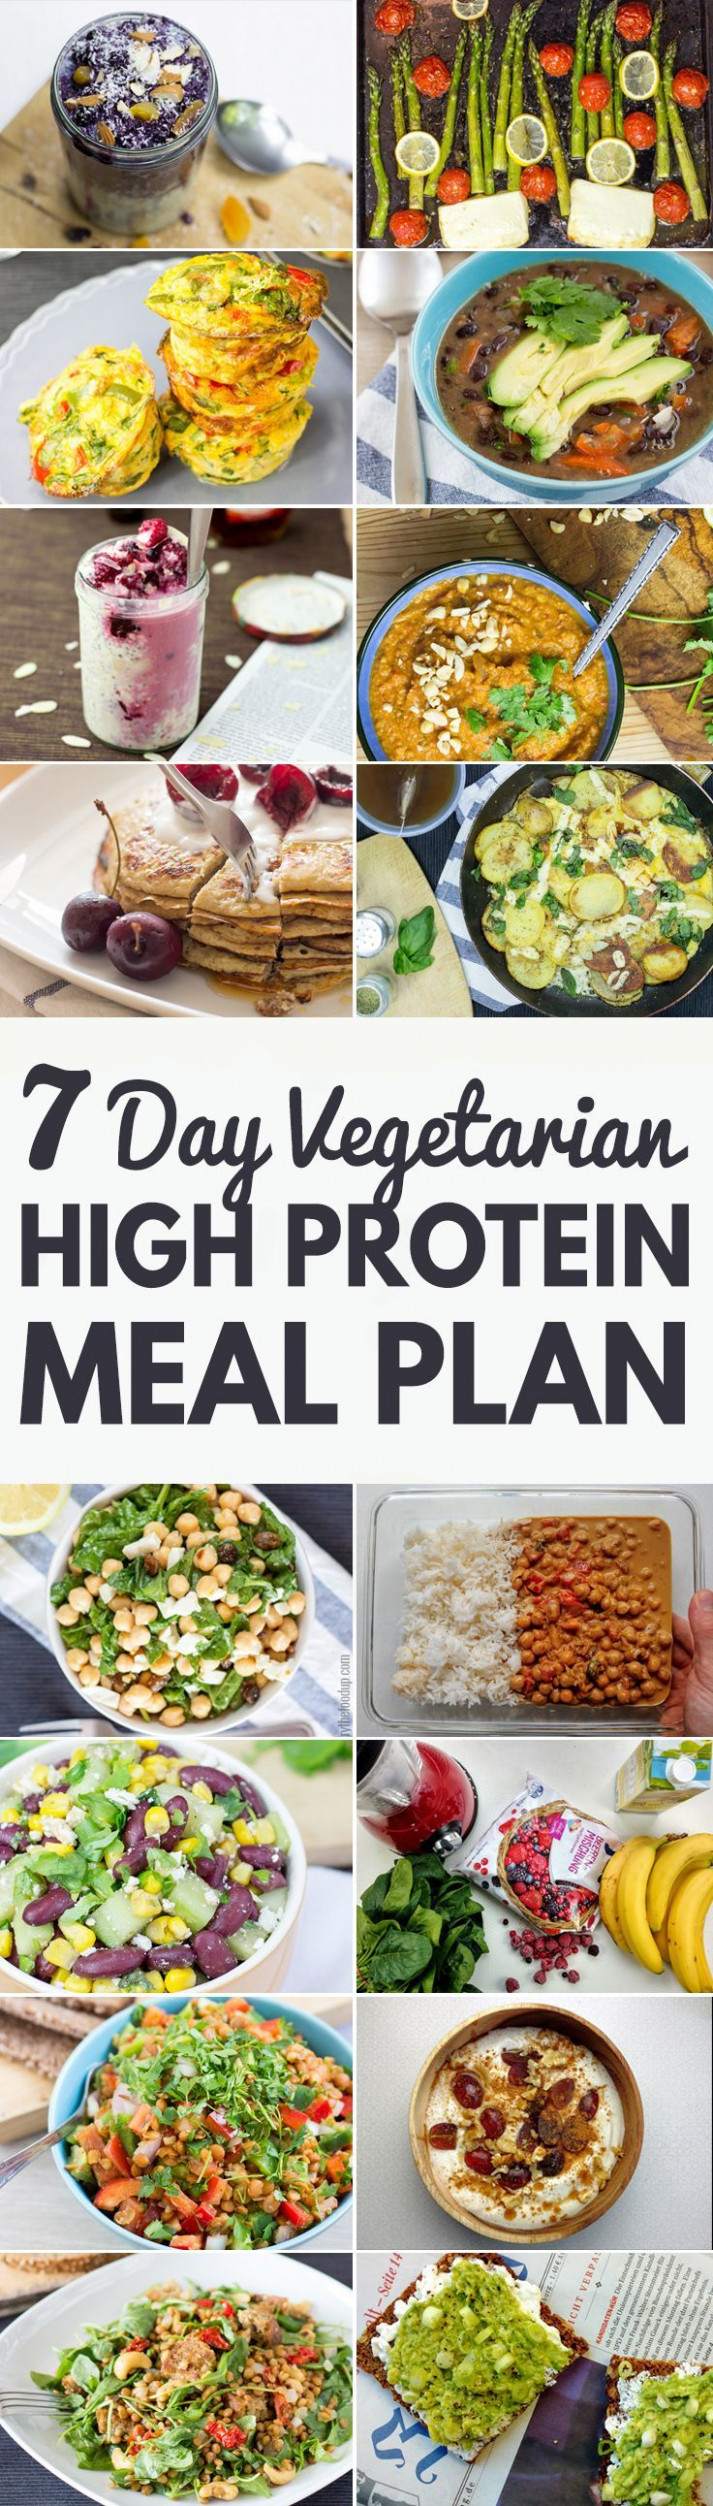 High Protein Vegetarian Meal Plan – Build Muscle and Tone Up - vegetarian recipes that are high in protein